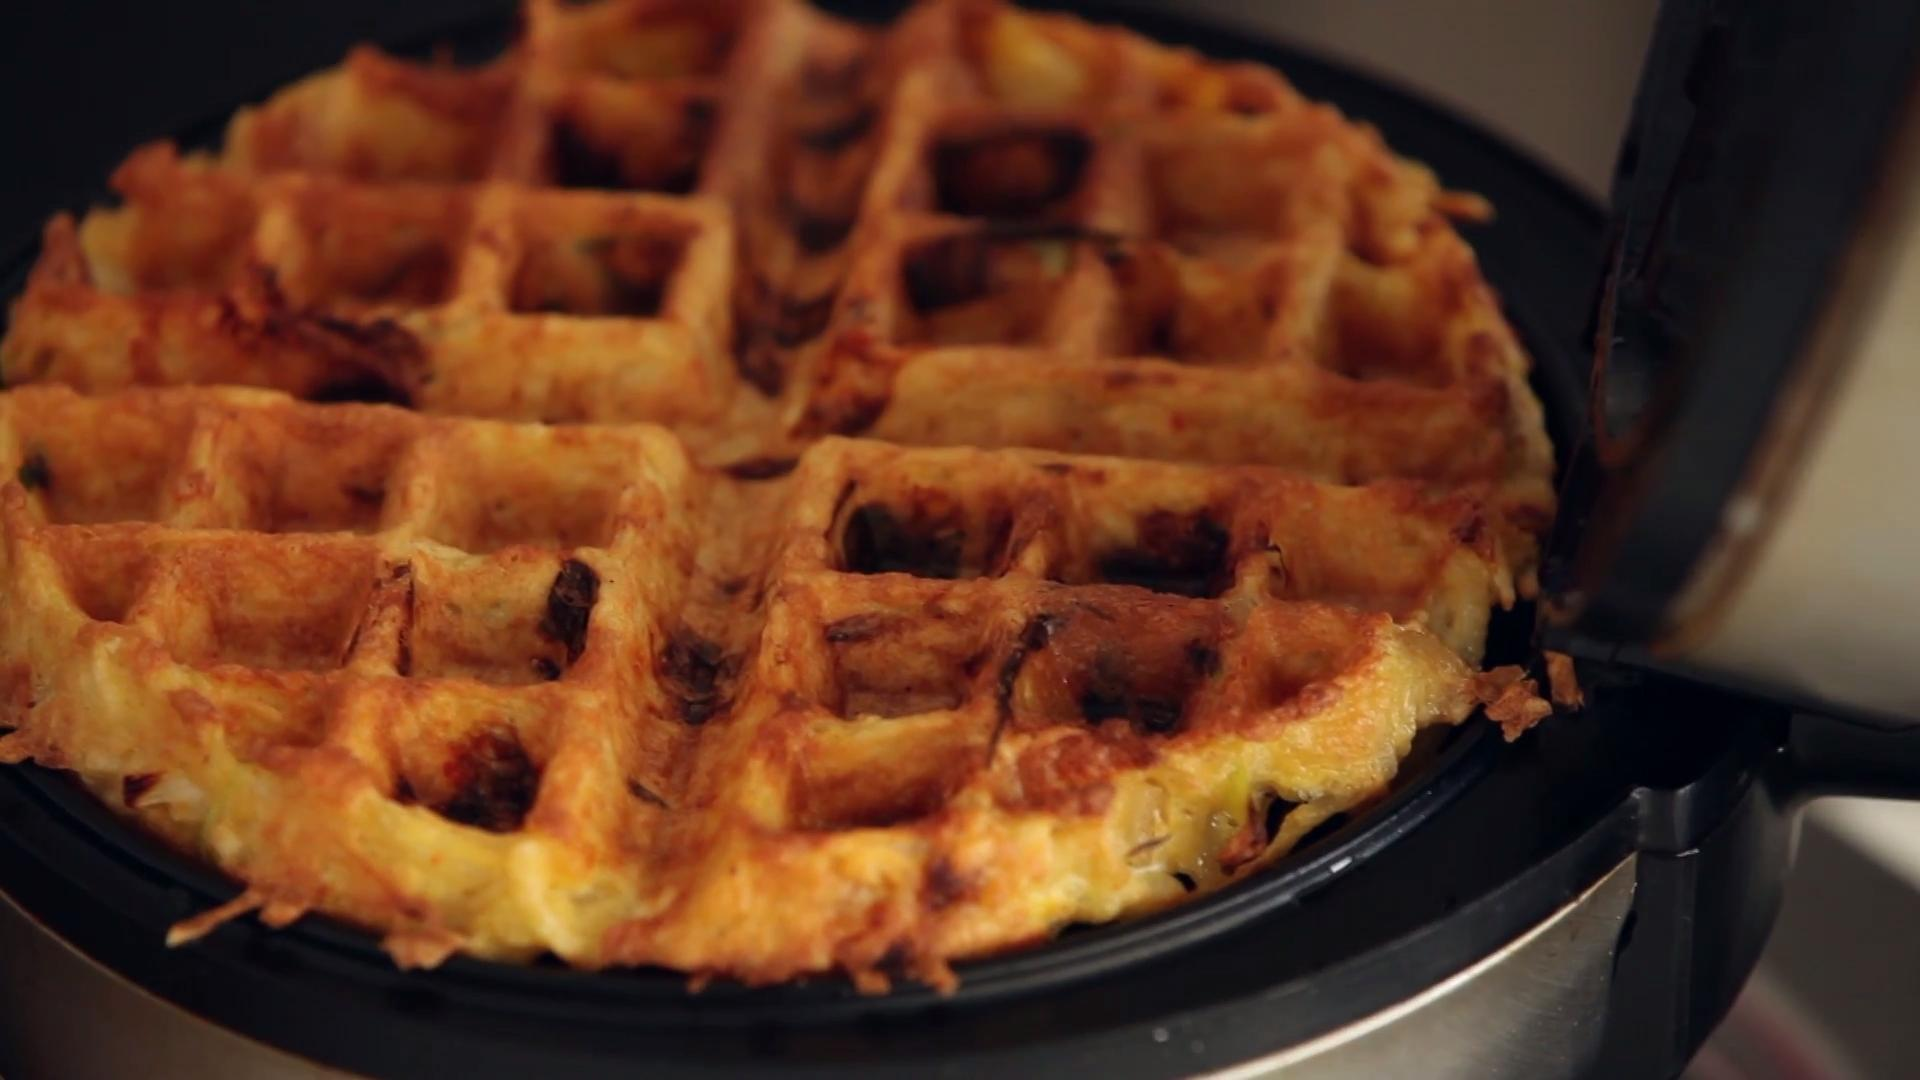 The next time you're planning out a menu, consider adding one of her popular dishes to your weeknight rotation. How To Make A Kimchi Hashbrown Waffle Food Wine